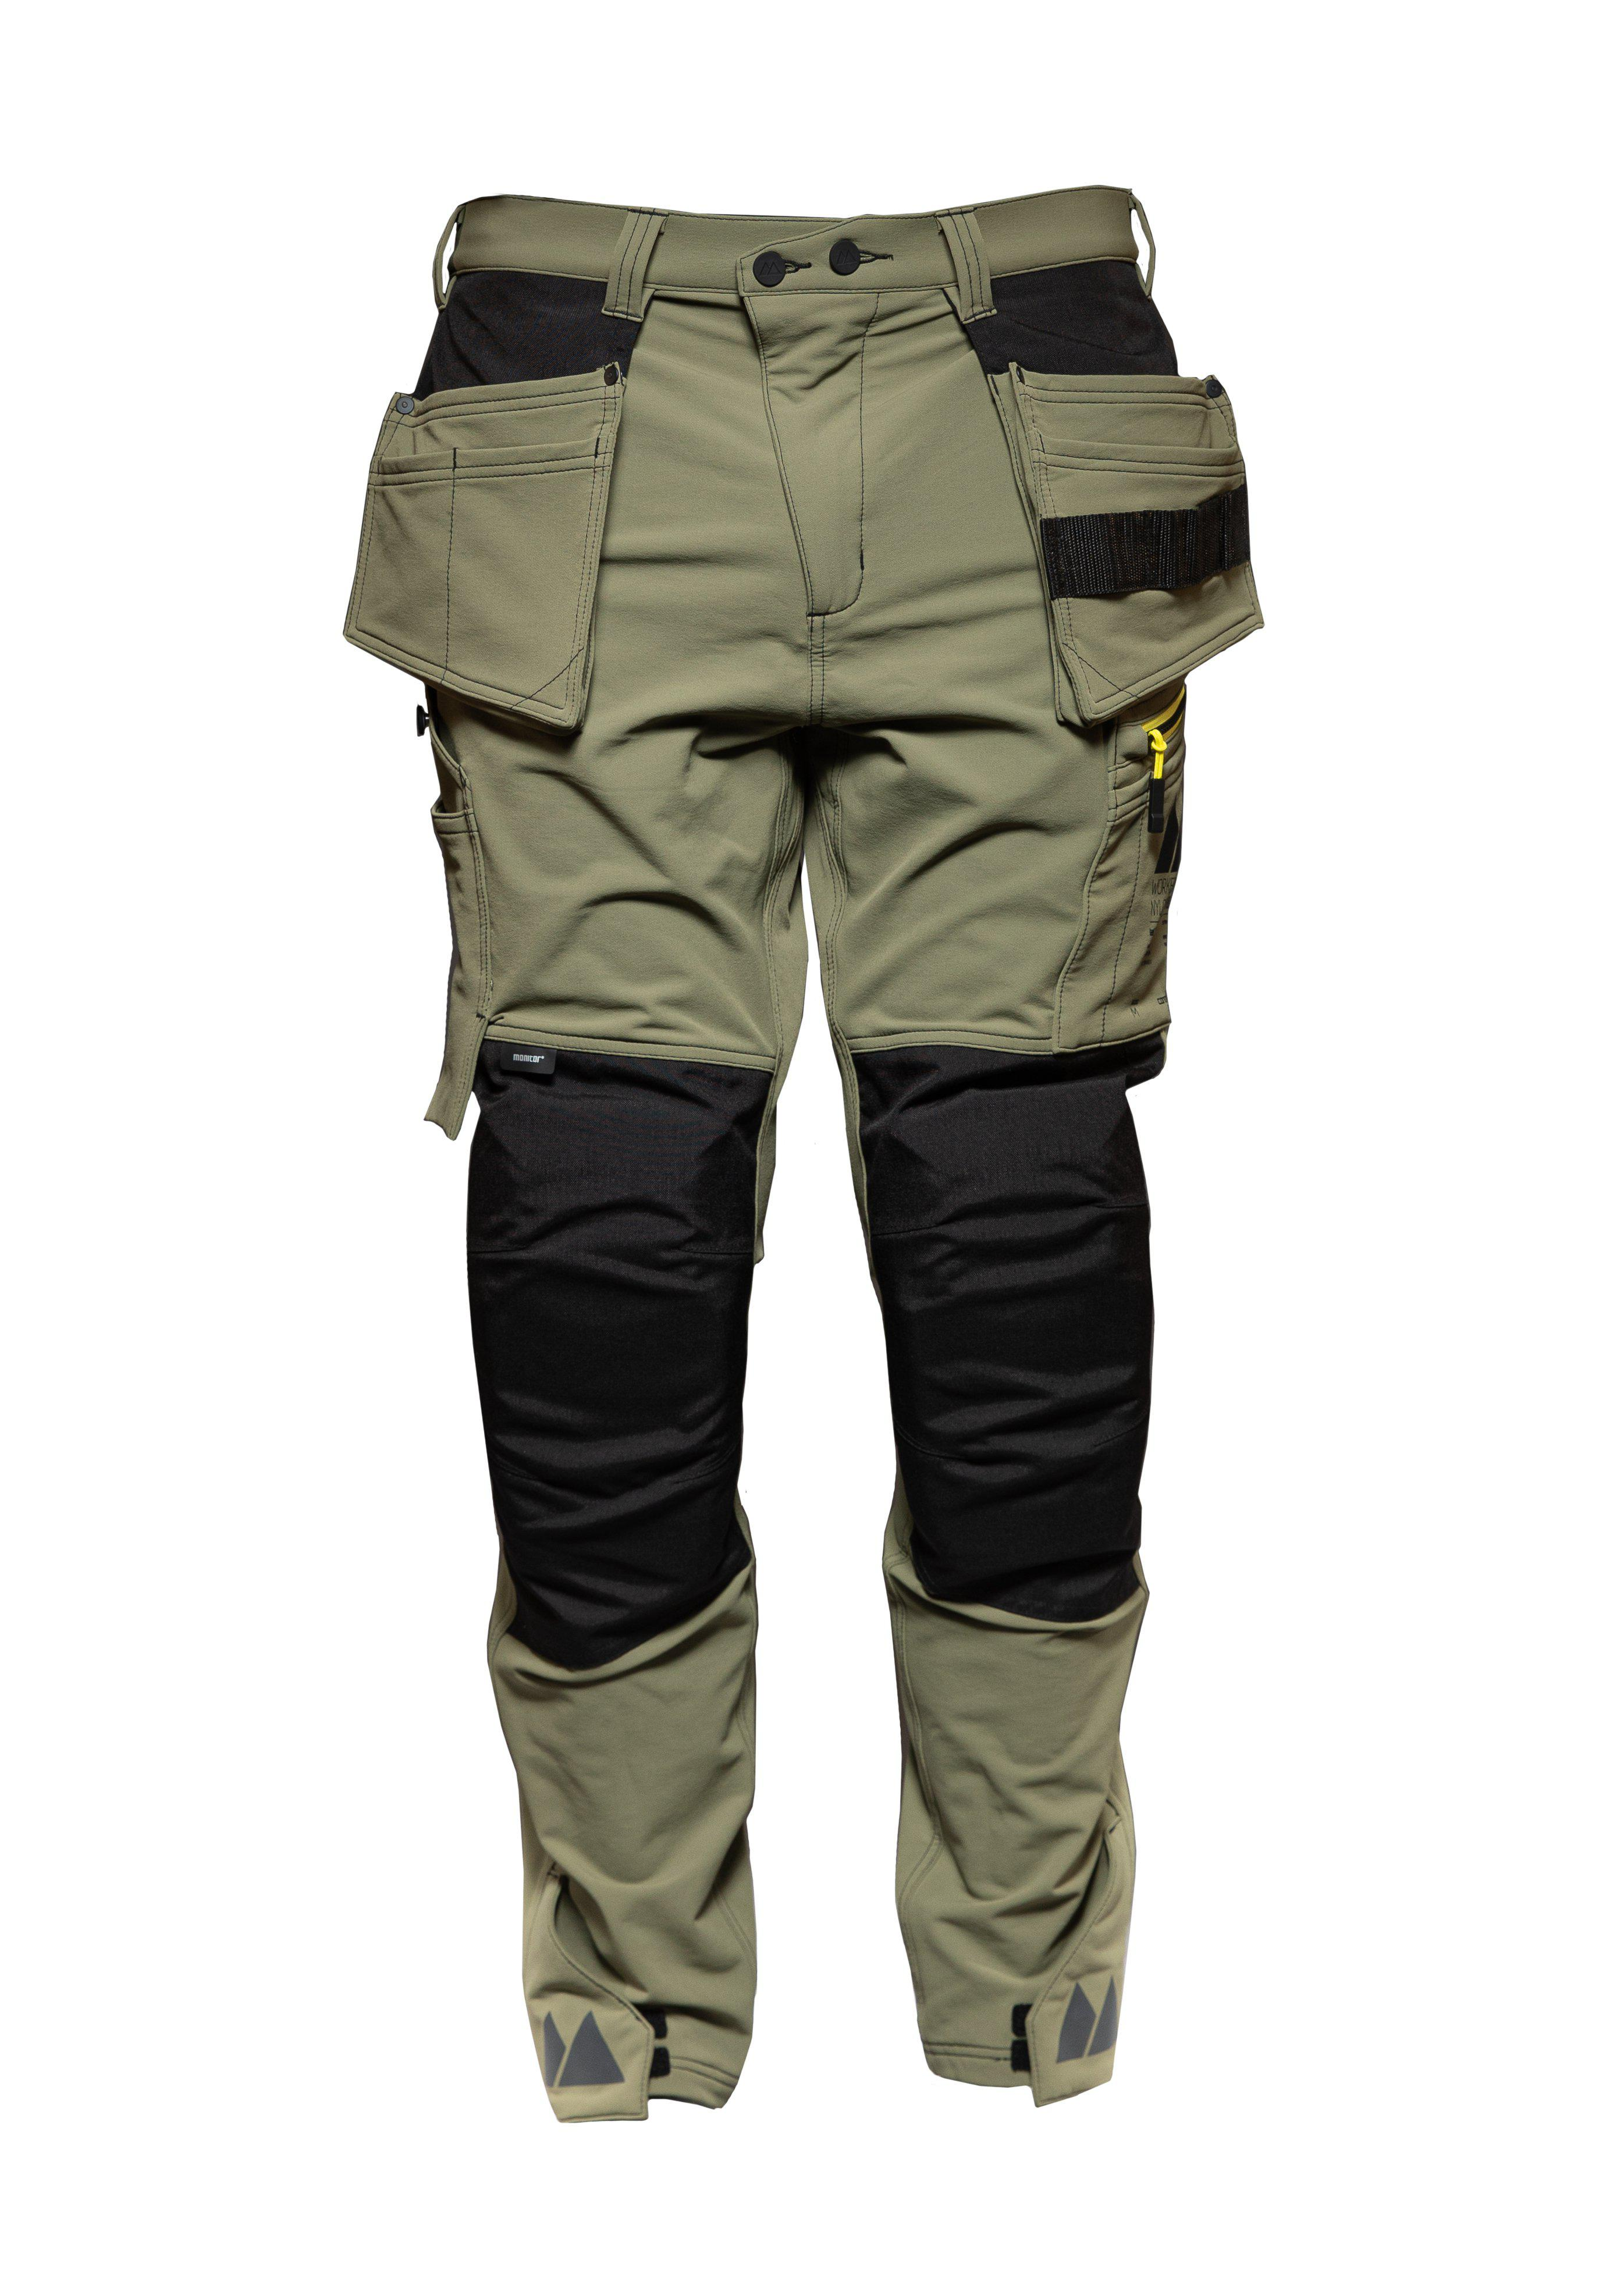 Versatile 4ws pant, Carpenter pant , Burnt olive green, M